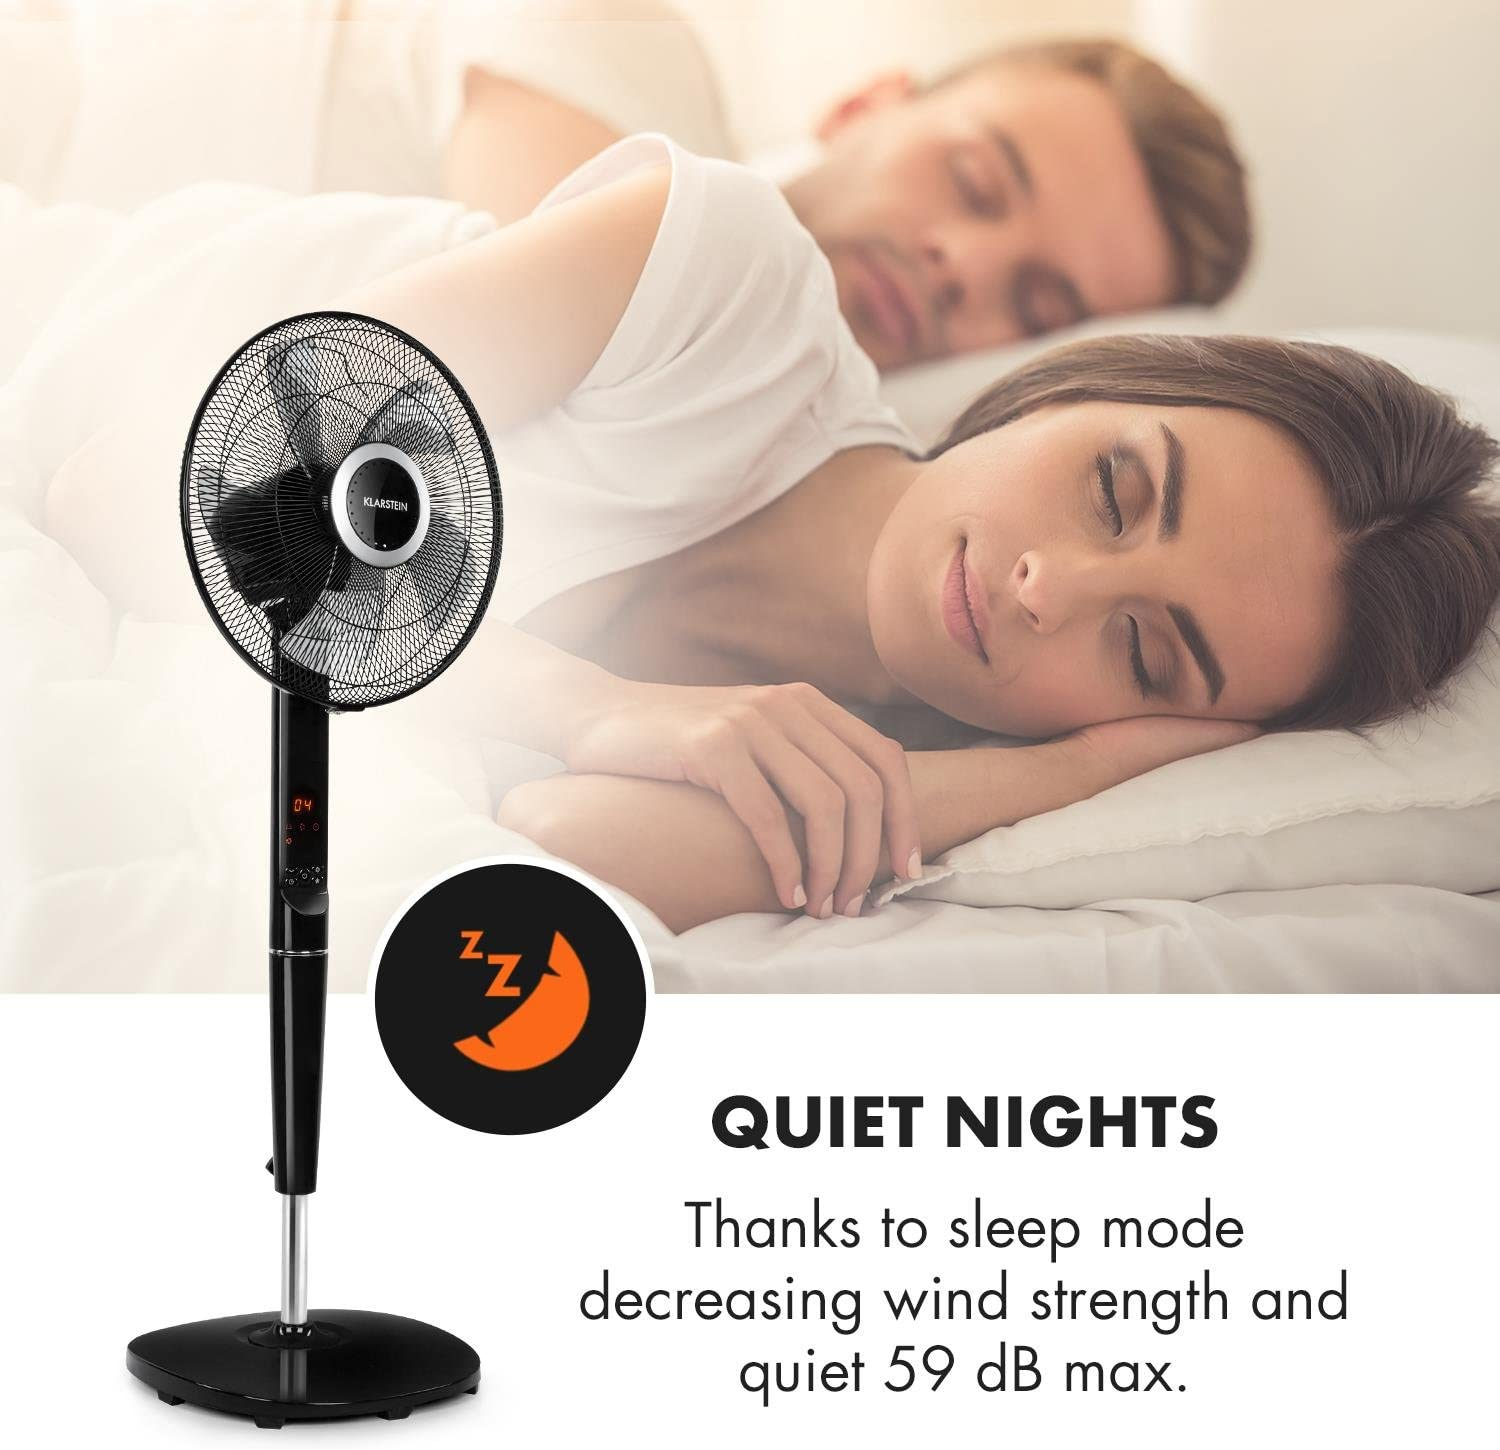 Remote Control 35W Height Adjustable 12 Speeds White Suitable for Rooms up to 80m/³ 5 Blade Rotor LCD Display Fan 16 Klarstein Silent Storm Cool Edition 5 Operating Modes 41cm